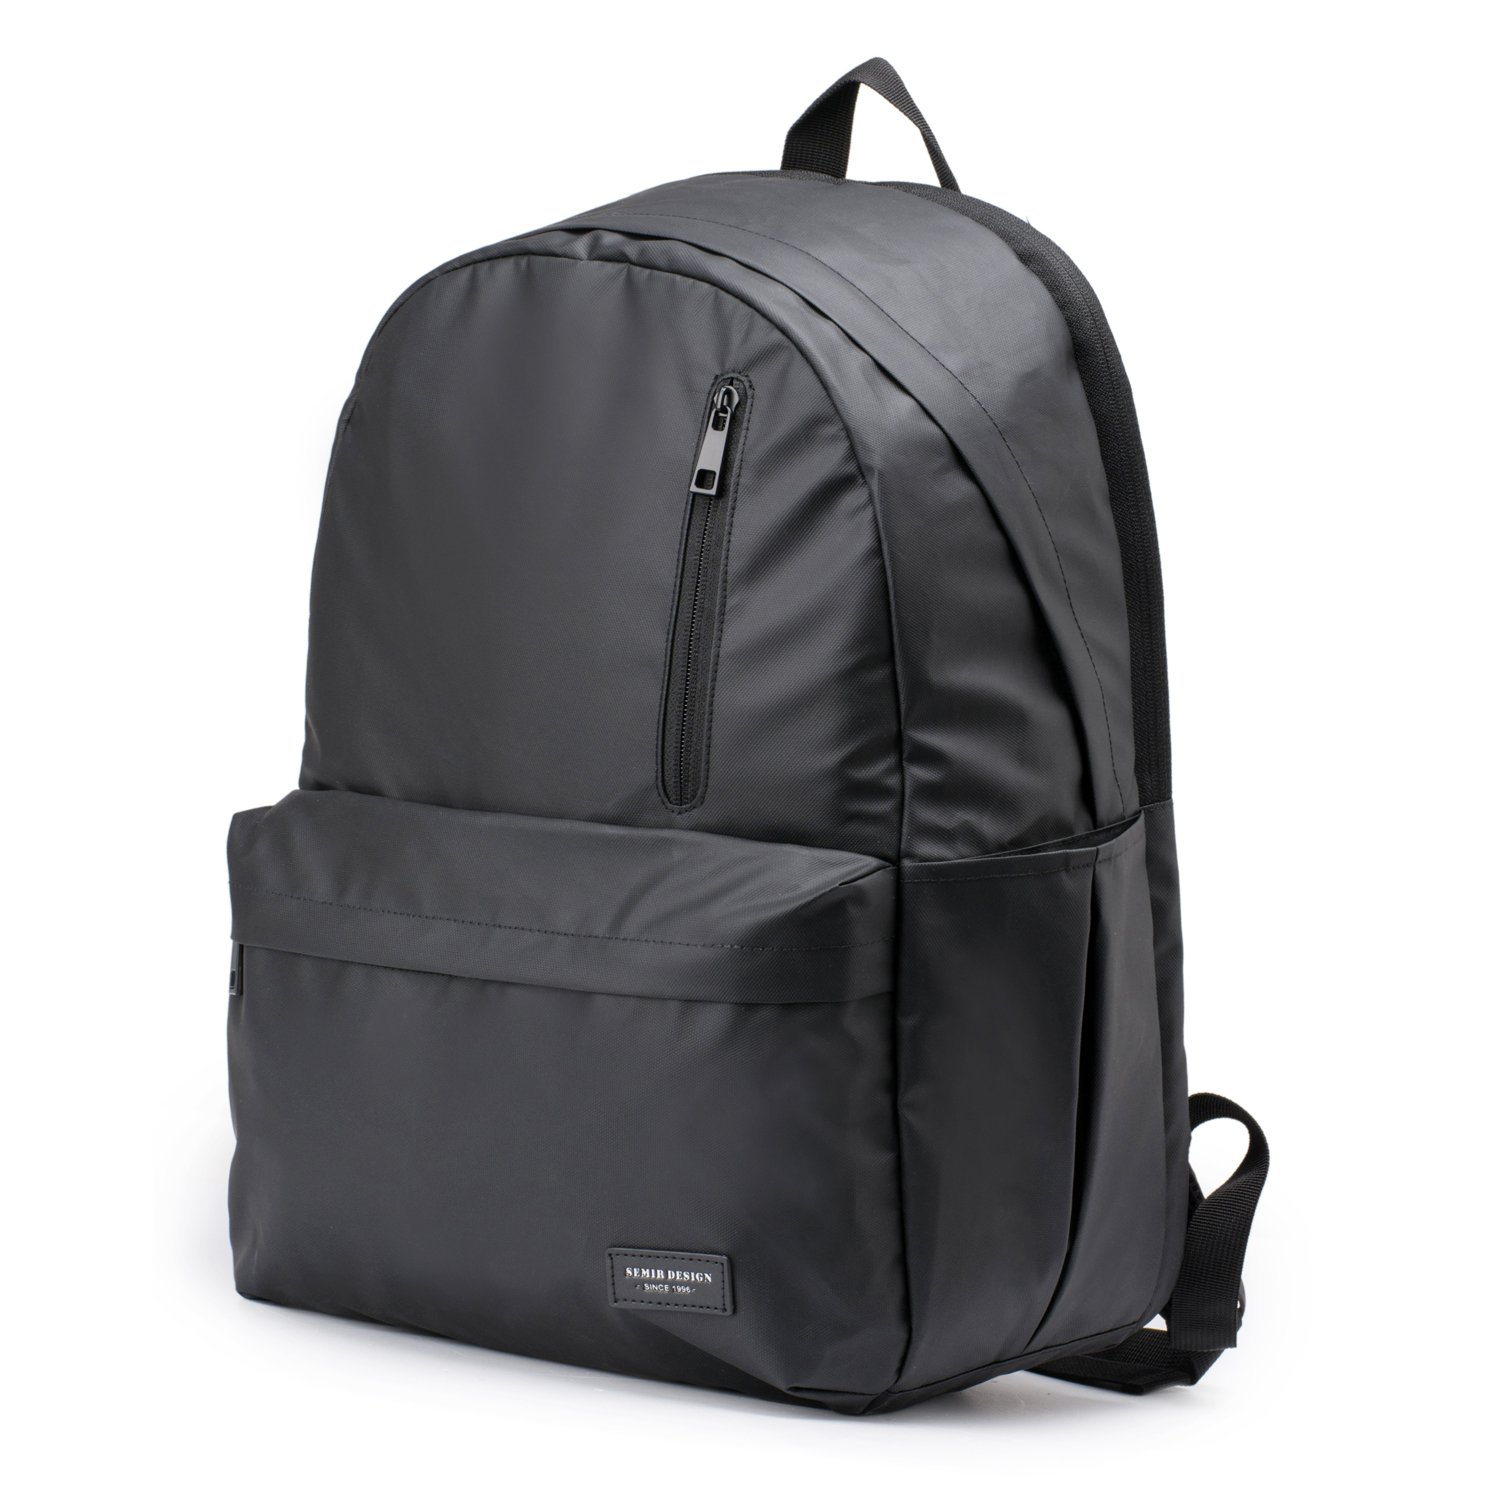 Laptop Backpack, Anti Theft Water Resistant College School Backpack,Travel Computer Bag for Women  Men,Business Backpack Fits Under 17.3-Inch Laptop and Notebook by Semir(Black)